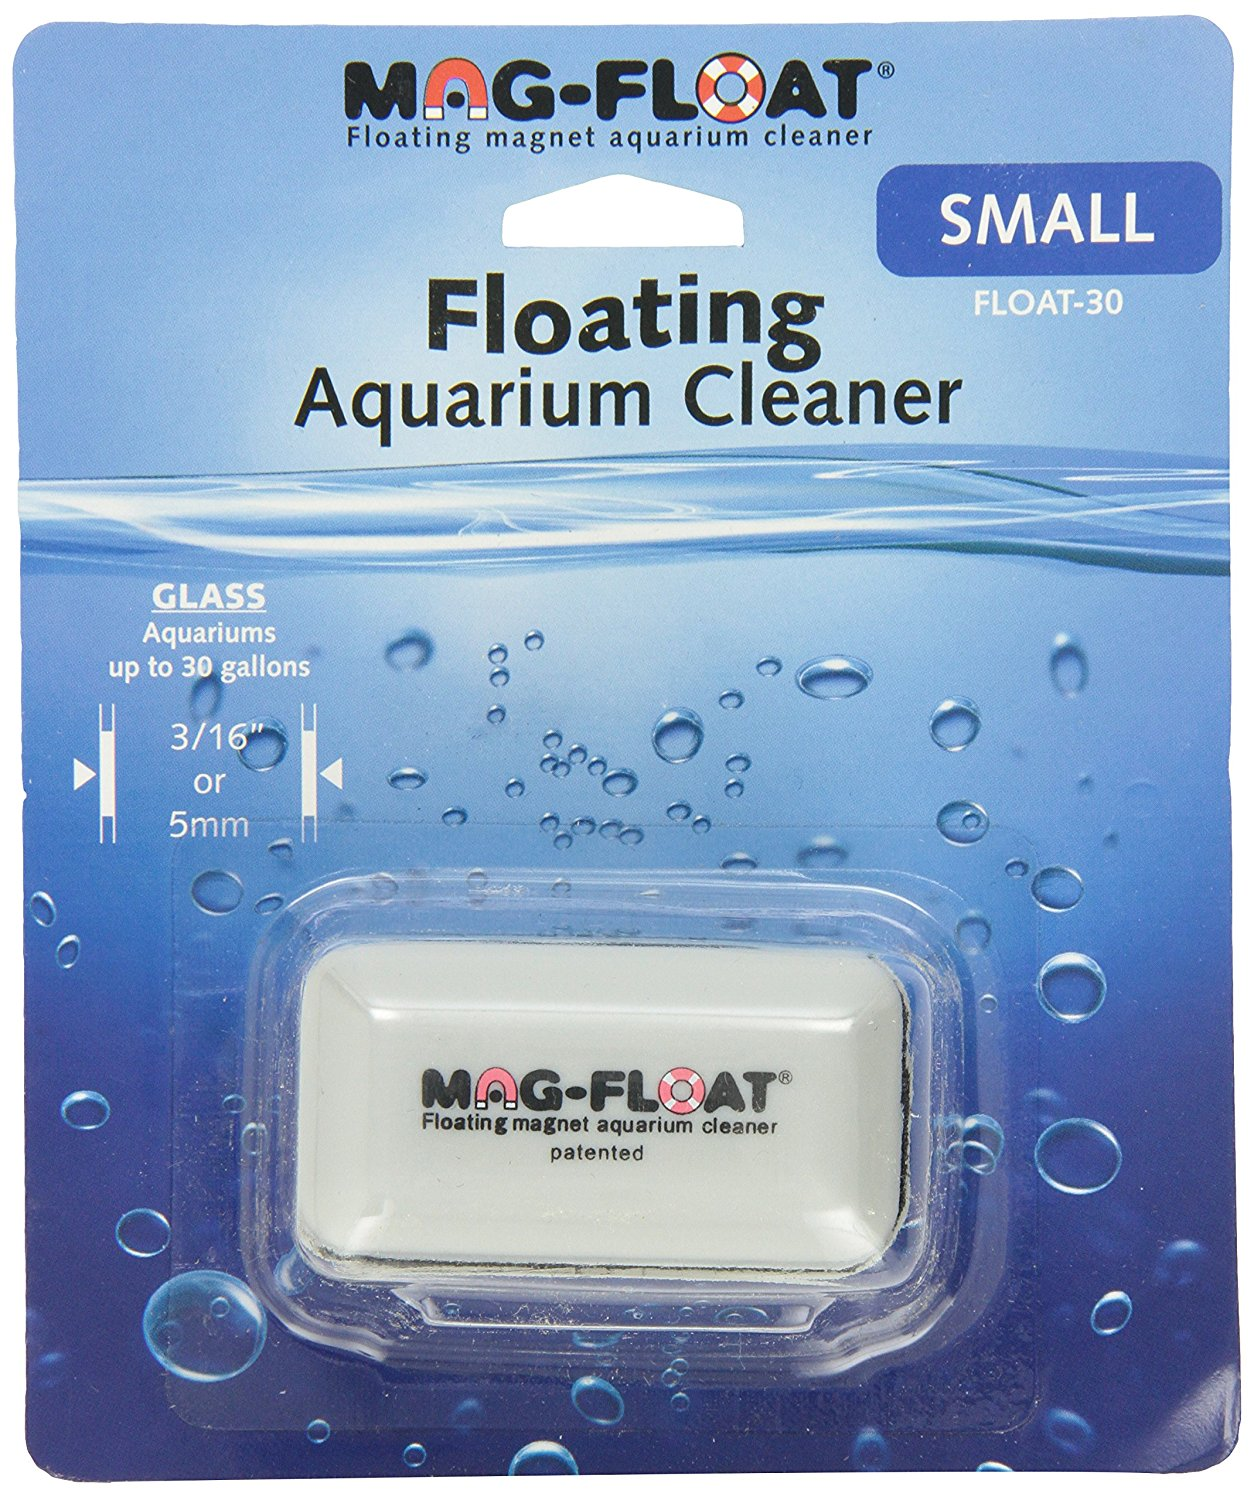 Mag-Float Glass Aquarium Cleaner in Grey by